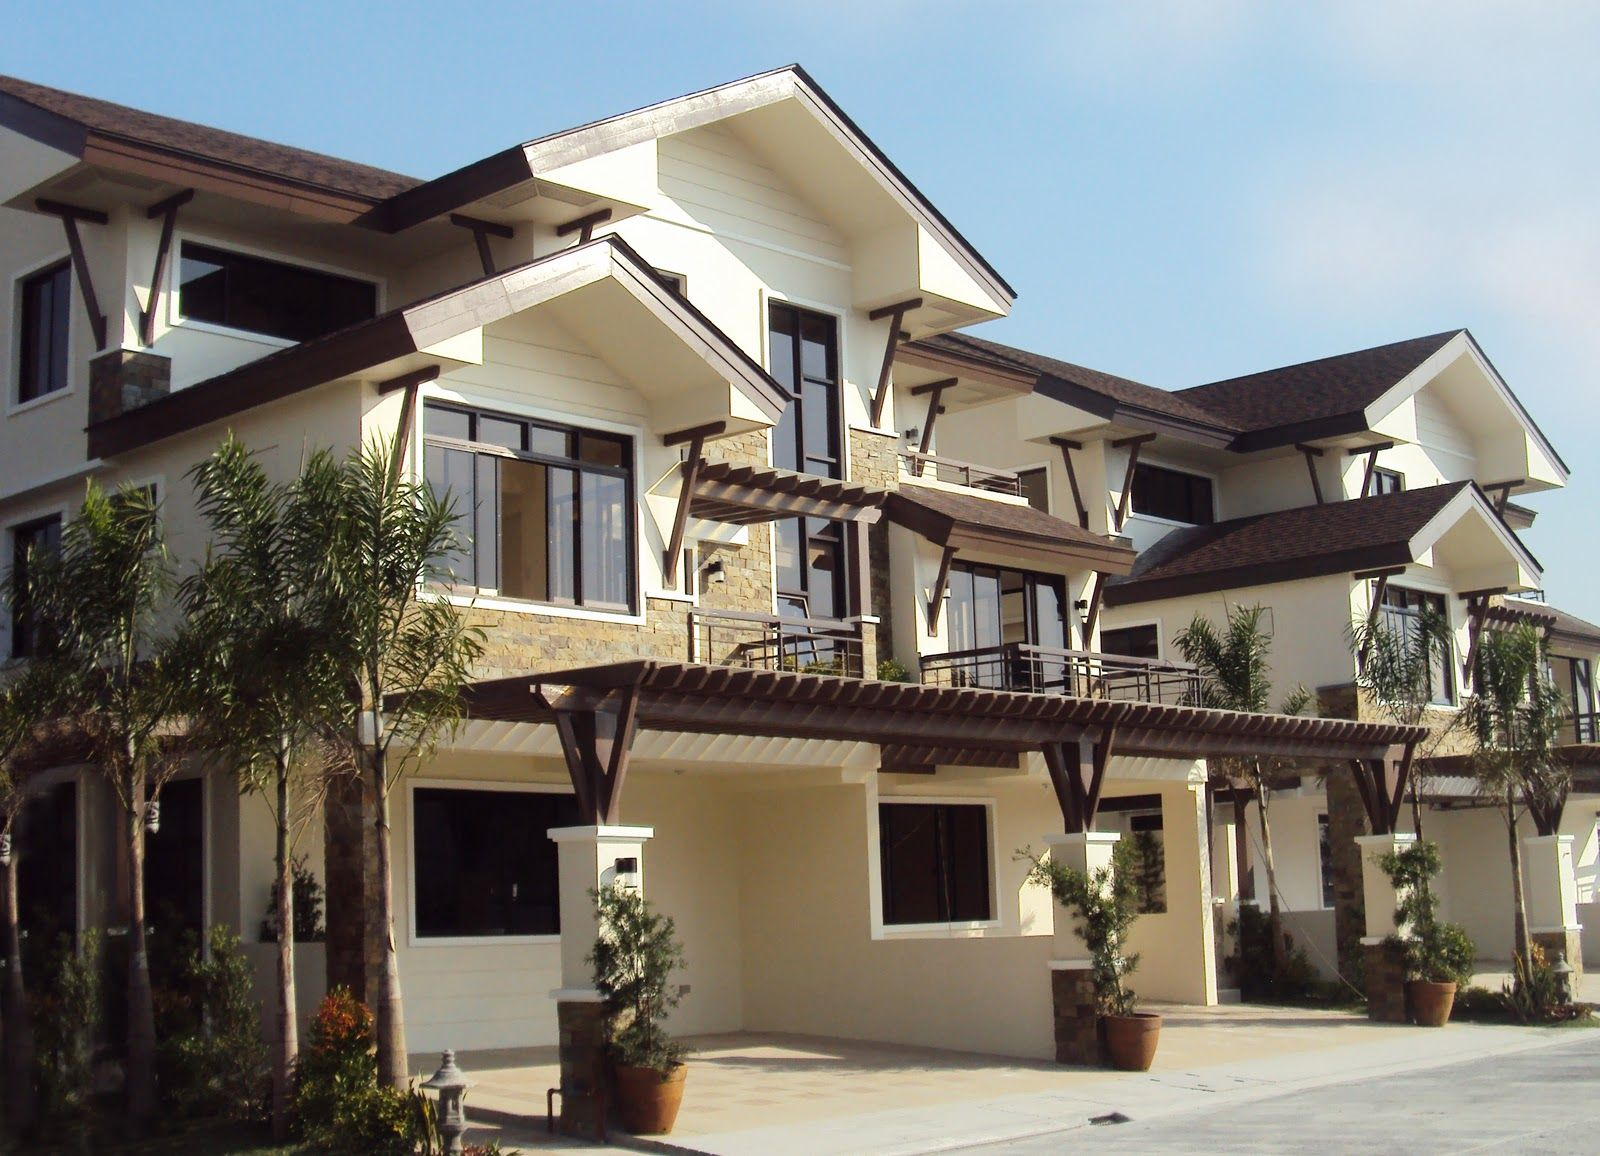 Dream house design philippines dmcis best dream house in the philippines diy décoration appartements